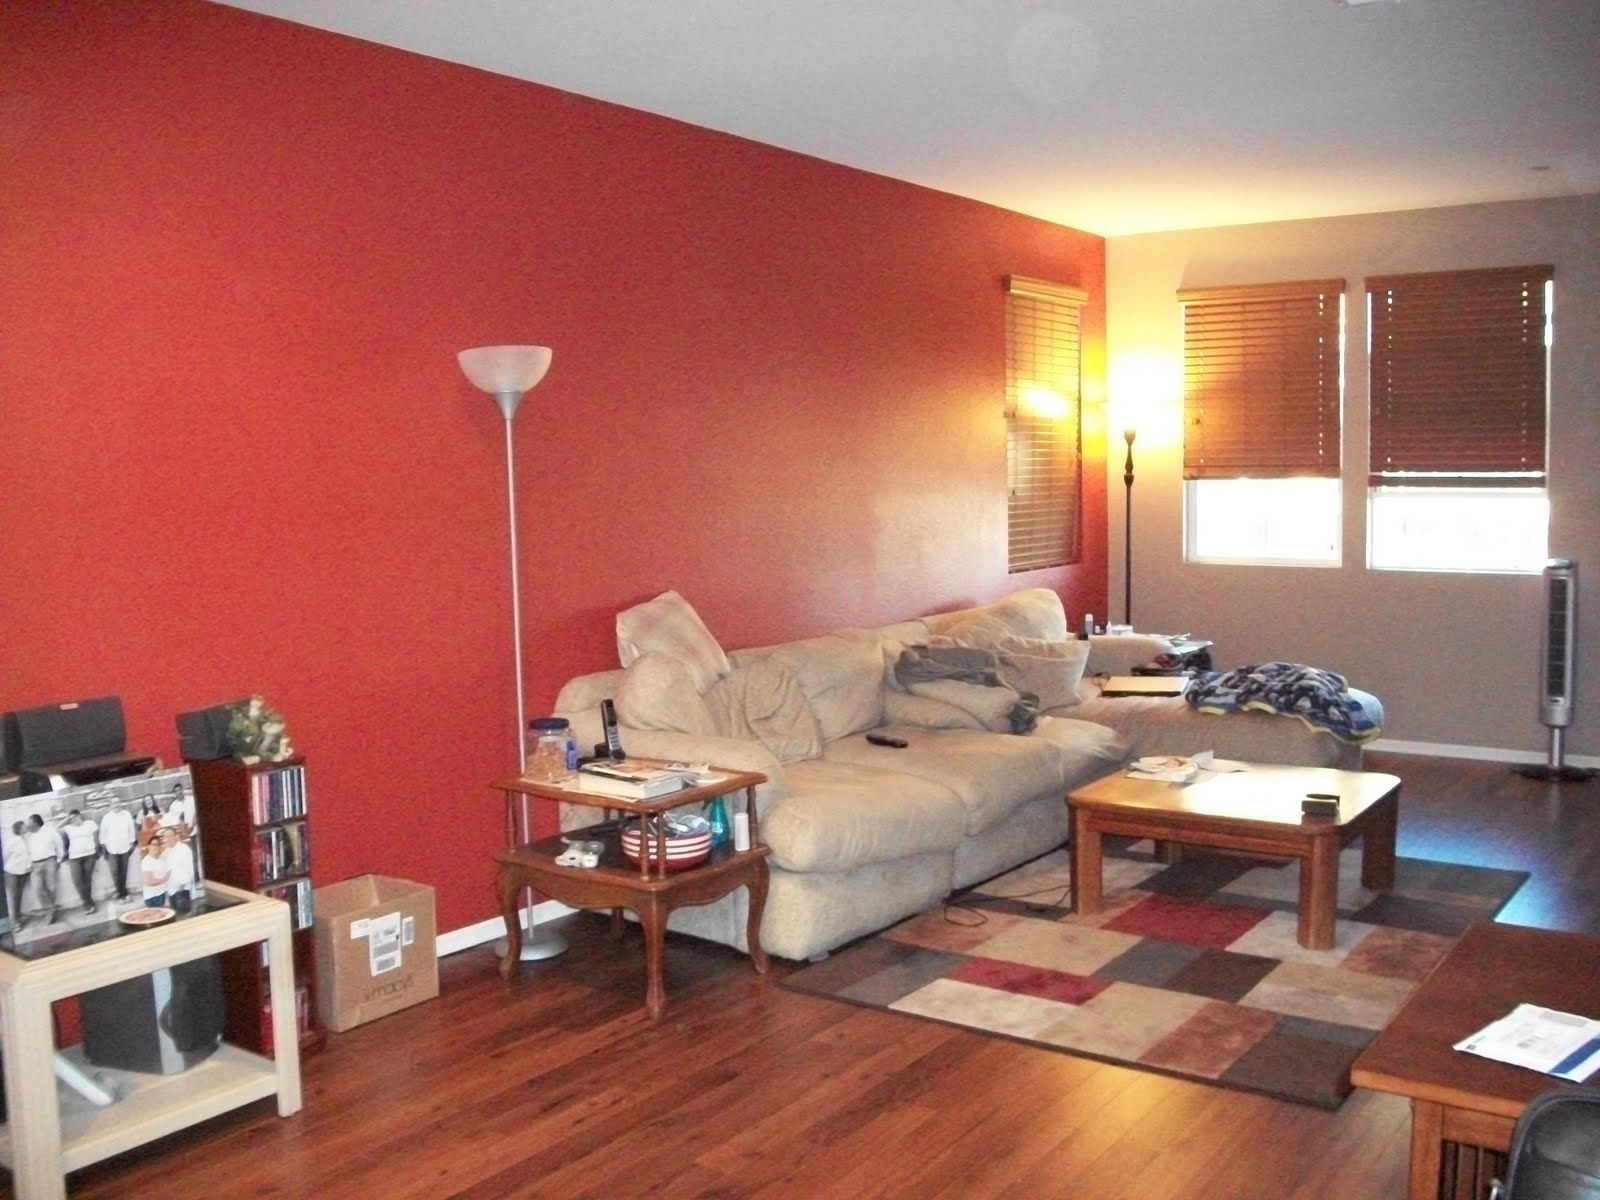 Jeffrey And Kristi Tague Our Life Together Accent Walls In Living Room Red Accent Wall Living Room Red